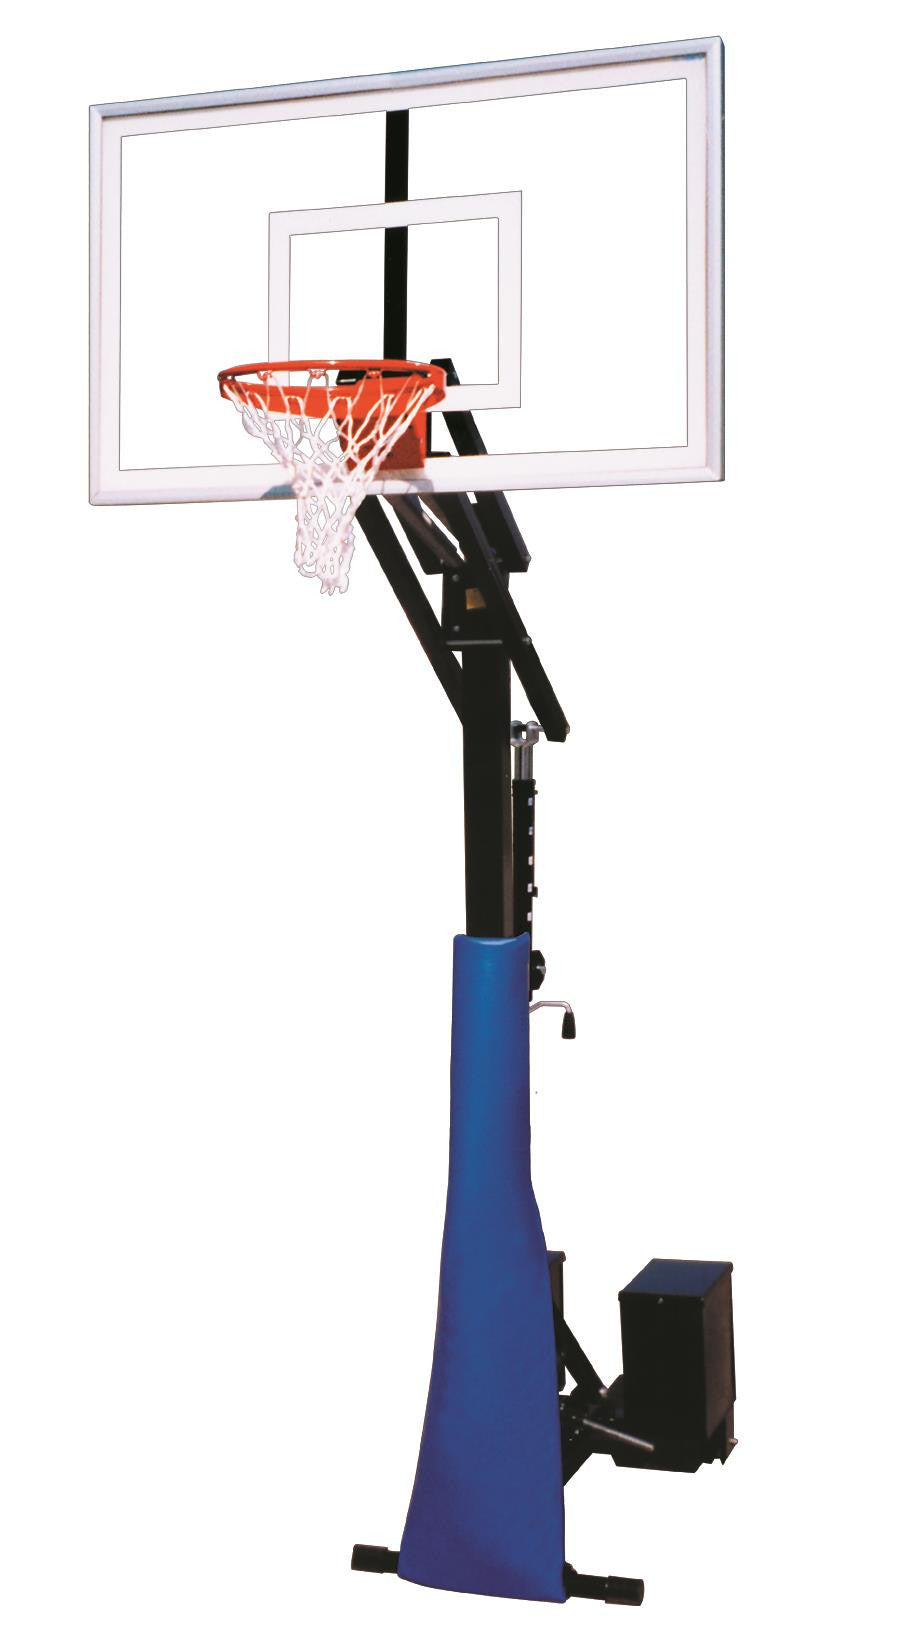 First Team Rolla Jam Select Adjustable Portable Basketball Hoop 60 inch Acrylic